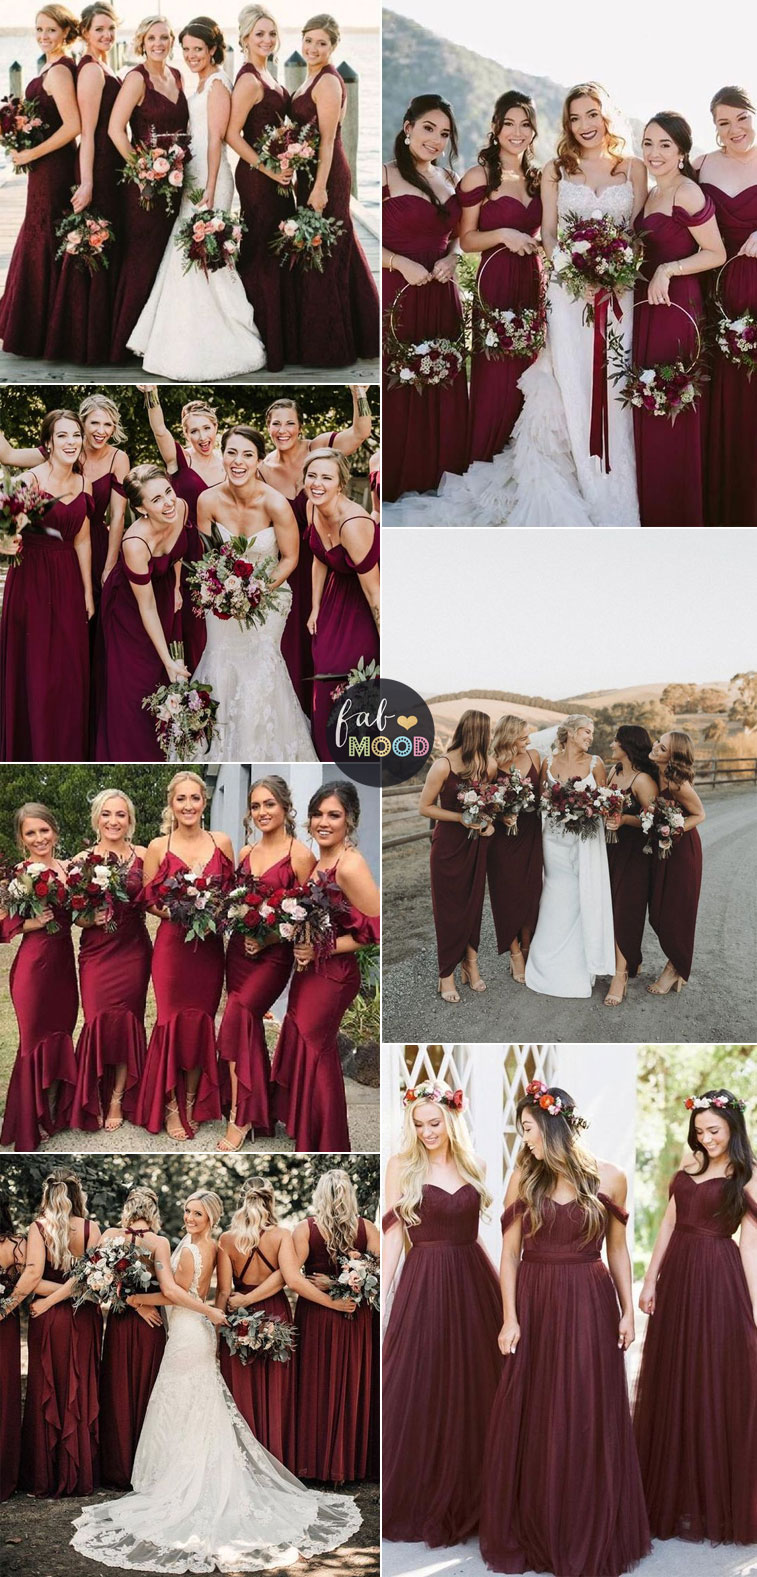 Burgundy bridesmaids - burgundy bridesmaid dresses #burgundy #bridesmaid